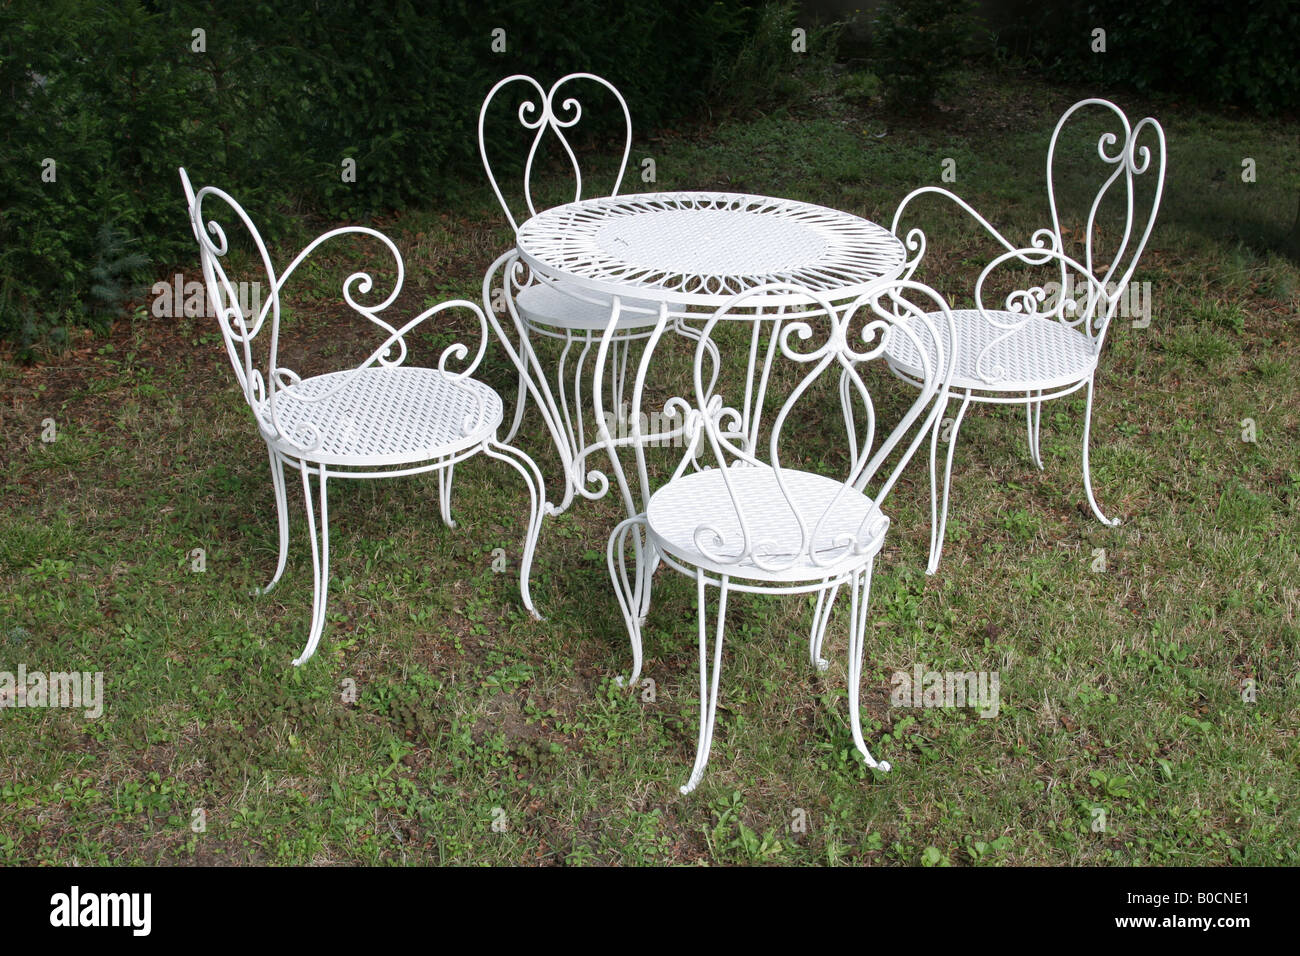 White wrought iron dining table and chairs in garden & White wrought iron dining table and chairs in garden Stock Photo ...